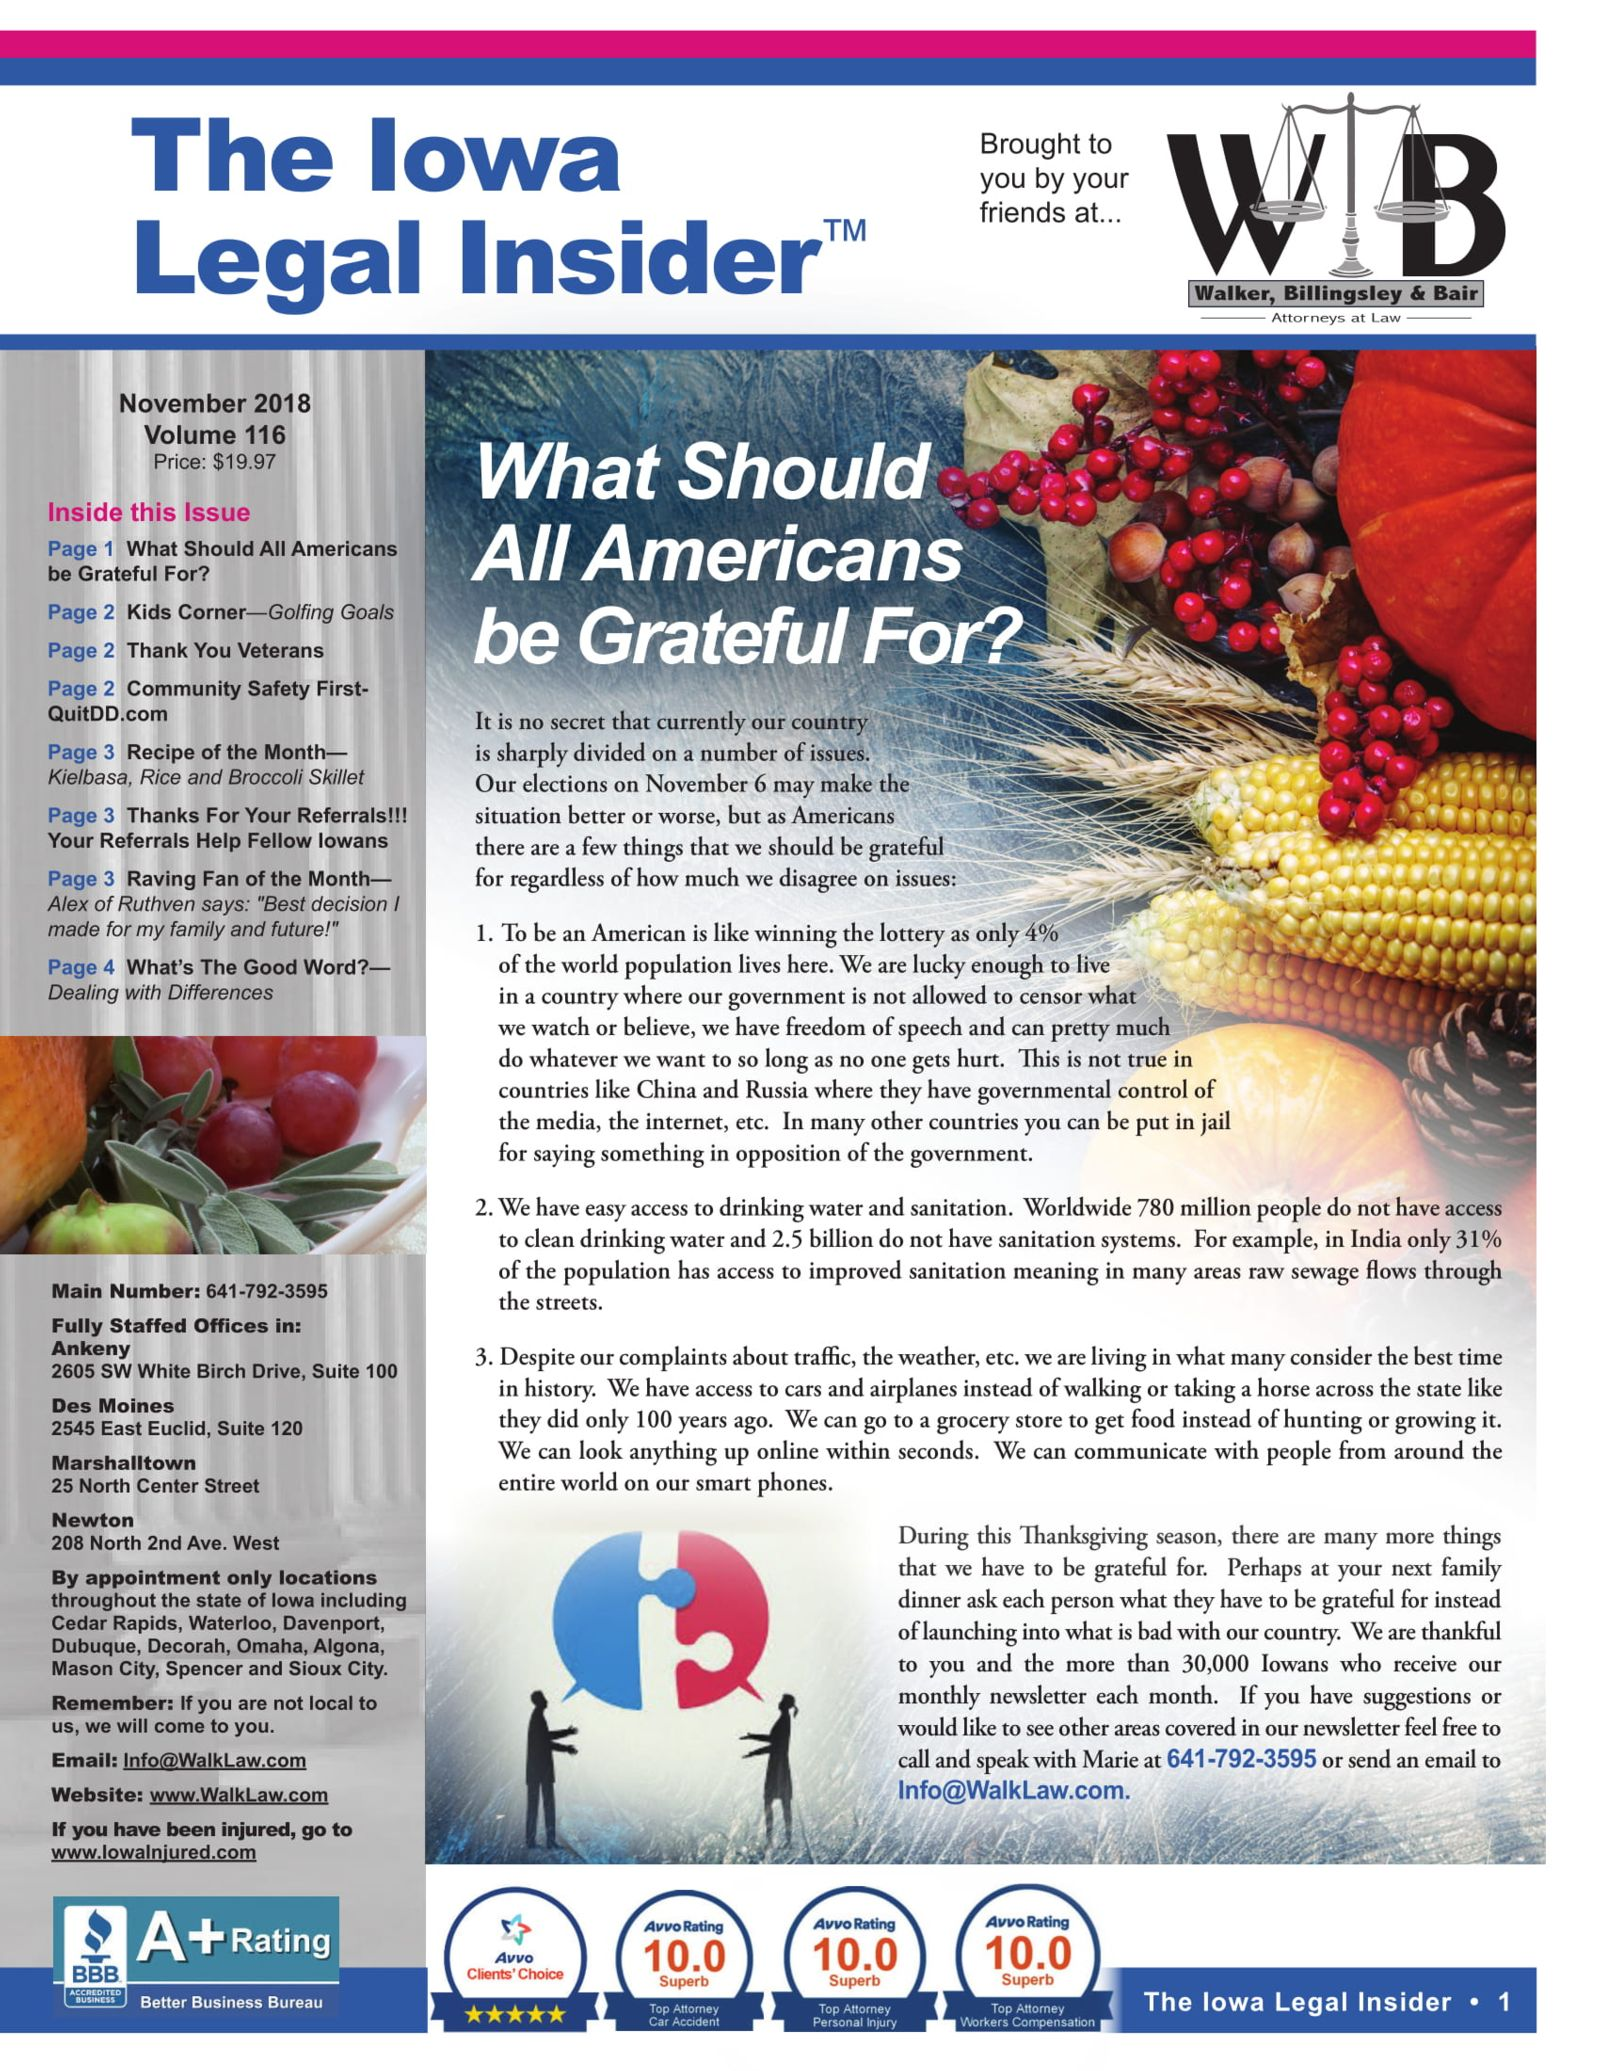 November legal insider 2018 what should Americans be great full for Iowa Personal Injury newsletter